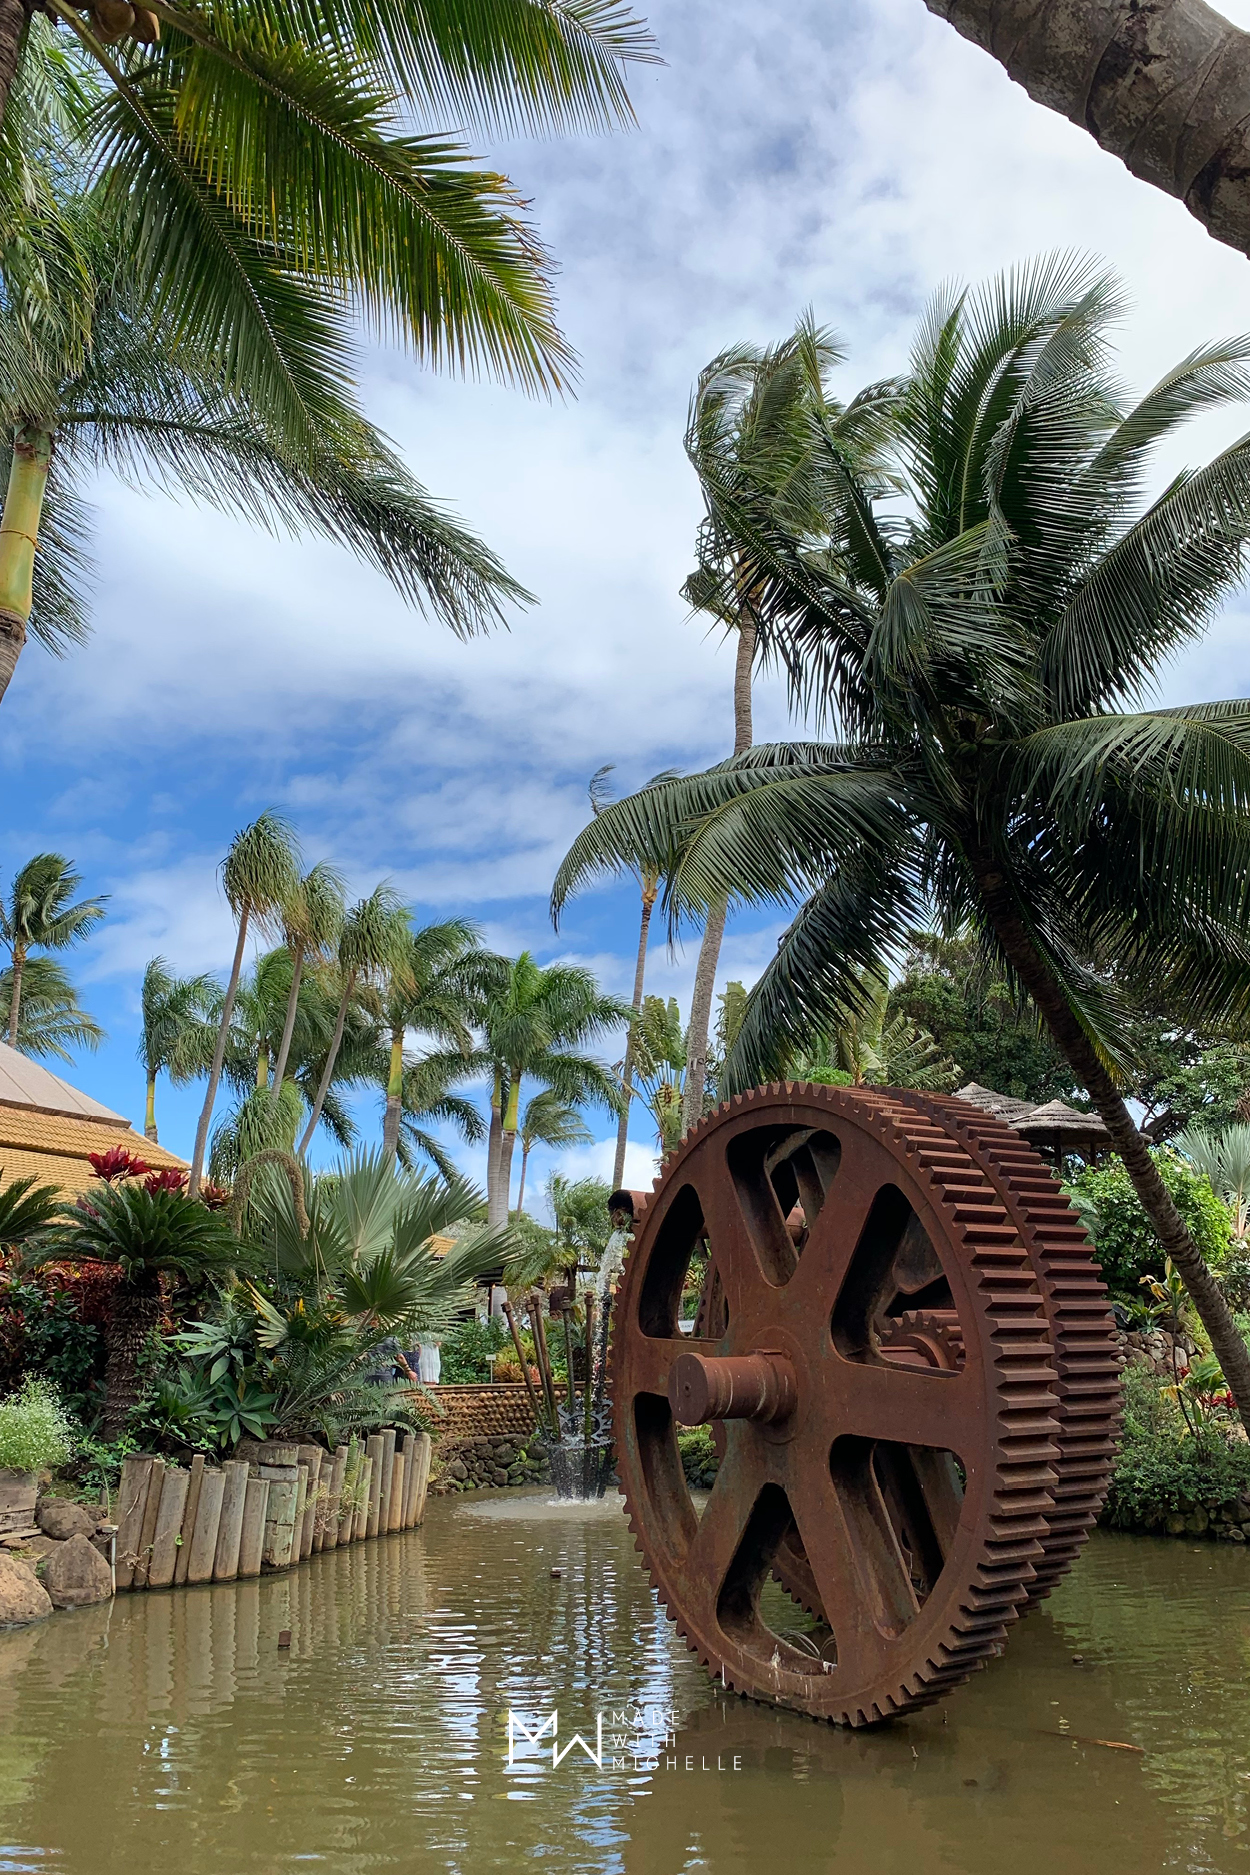 Things to do in Maui: Maui Tropical Plantation